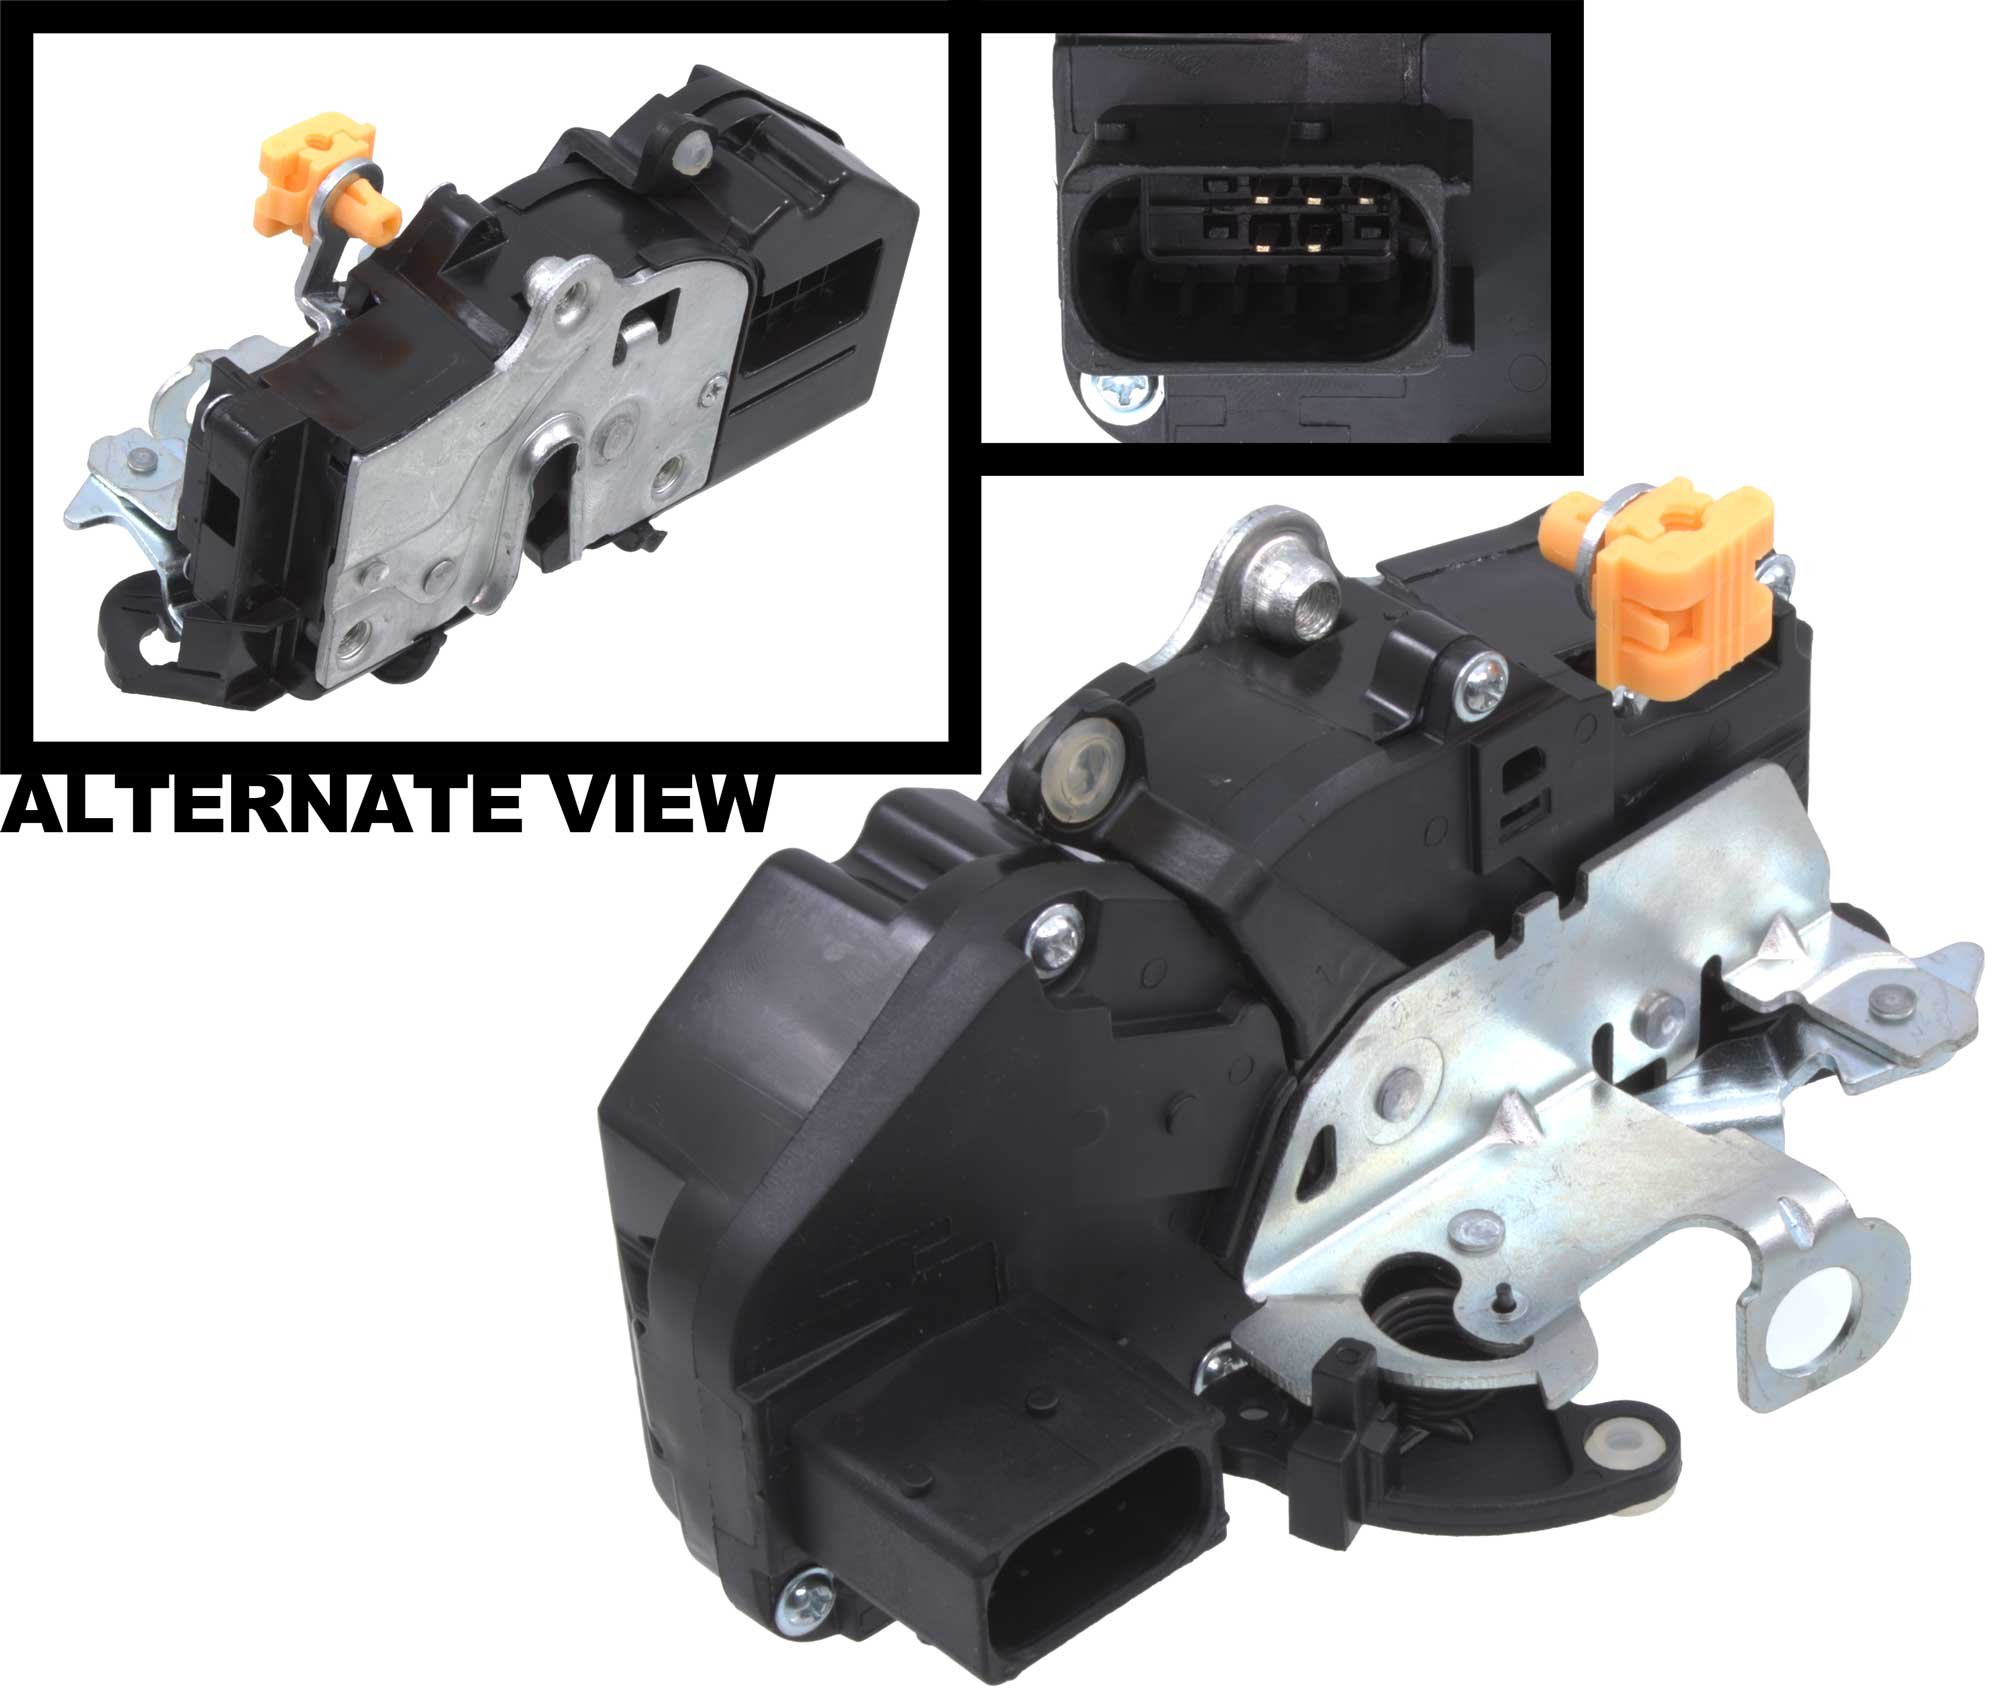 APDTY 042414 Door Latch & Lock Actuator Motor Assembly Fits Front Left (Driver-Side) 2007-2009 Escalade, Avalanche, Silverado, Suburban, Tahoe, Sierra & Yukon (Replaces 15880052, 15889954, 20783846)